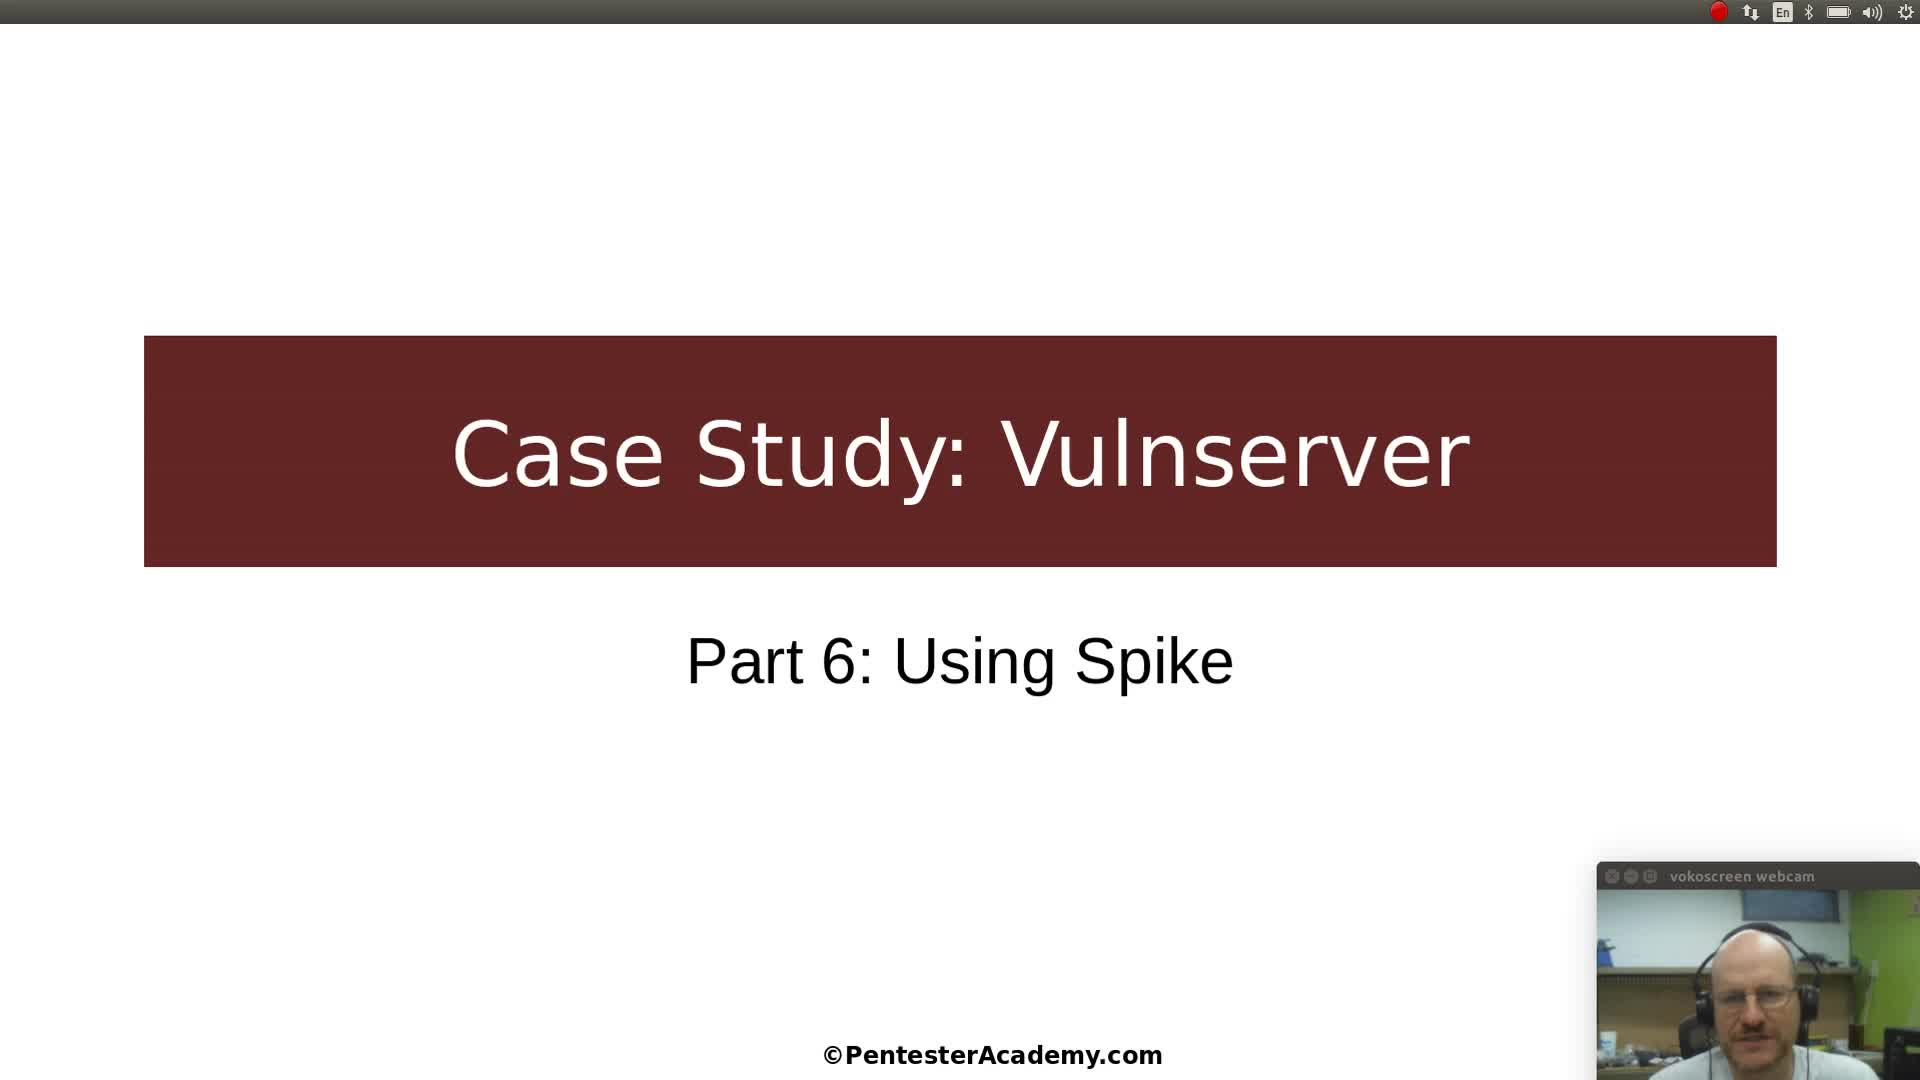 Case Study Vulnserver Part 6: Using Spike